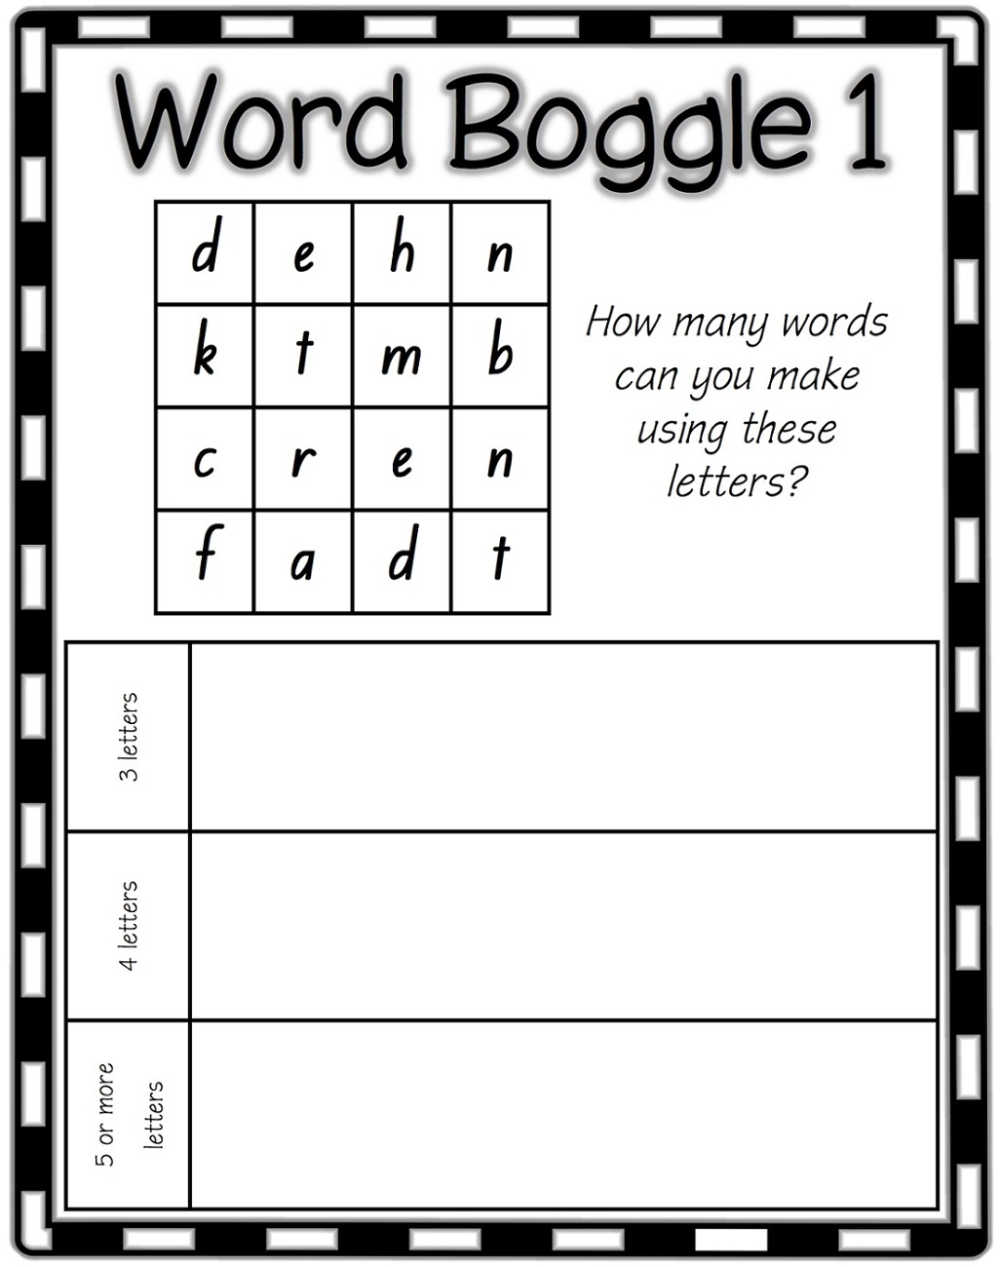 Word Boggle For Kids | Word Work, Word Games For Kids, Boggle